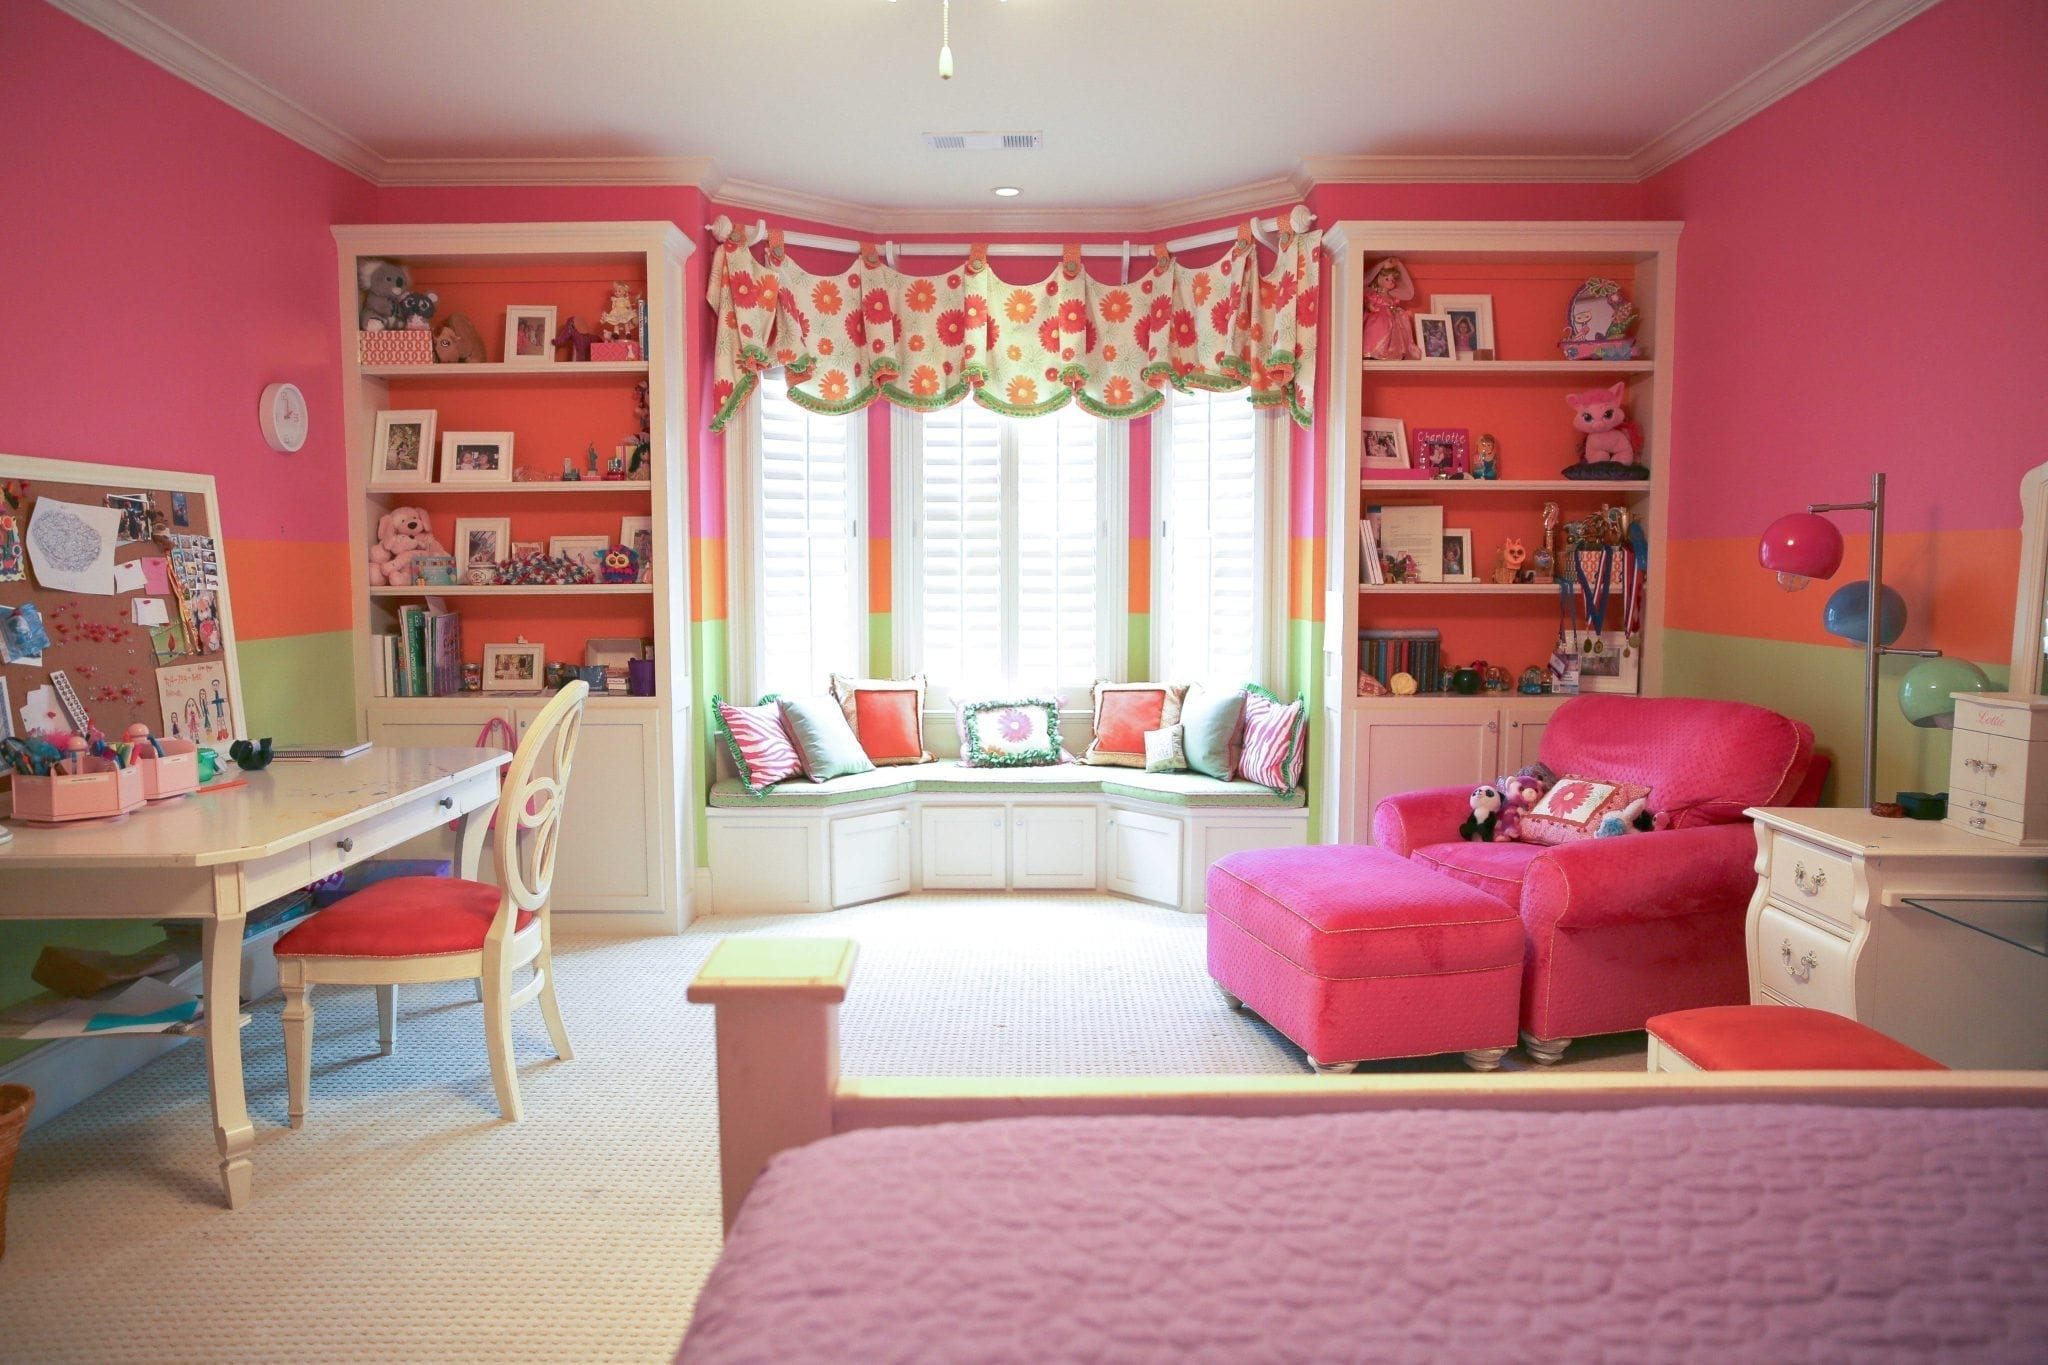 girls hot pink bedroom with flower drapery and window seat